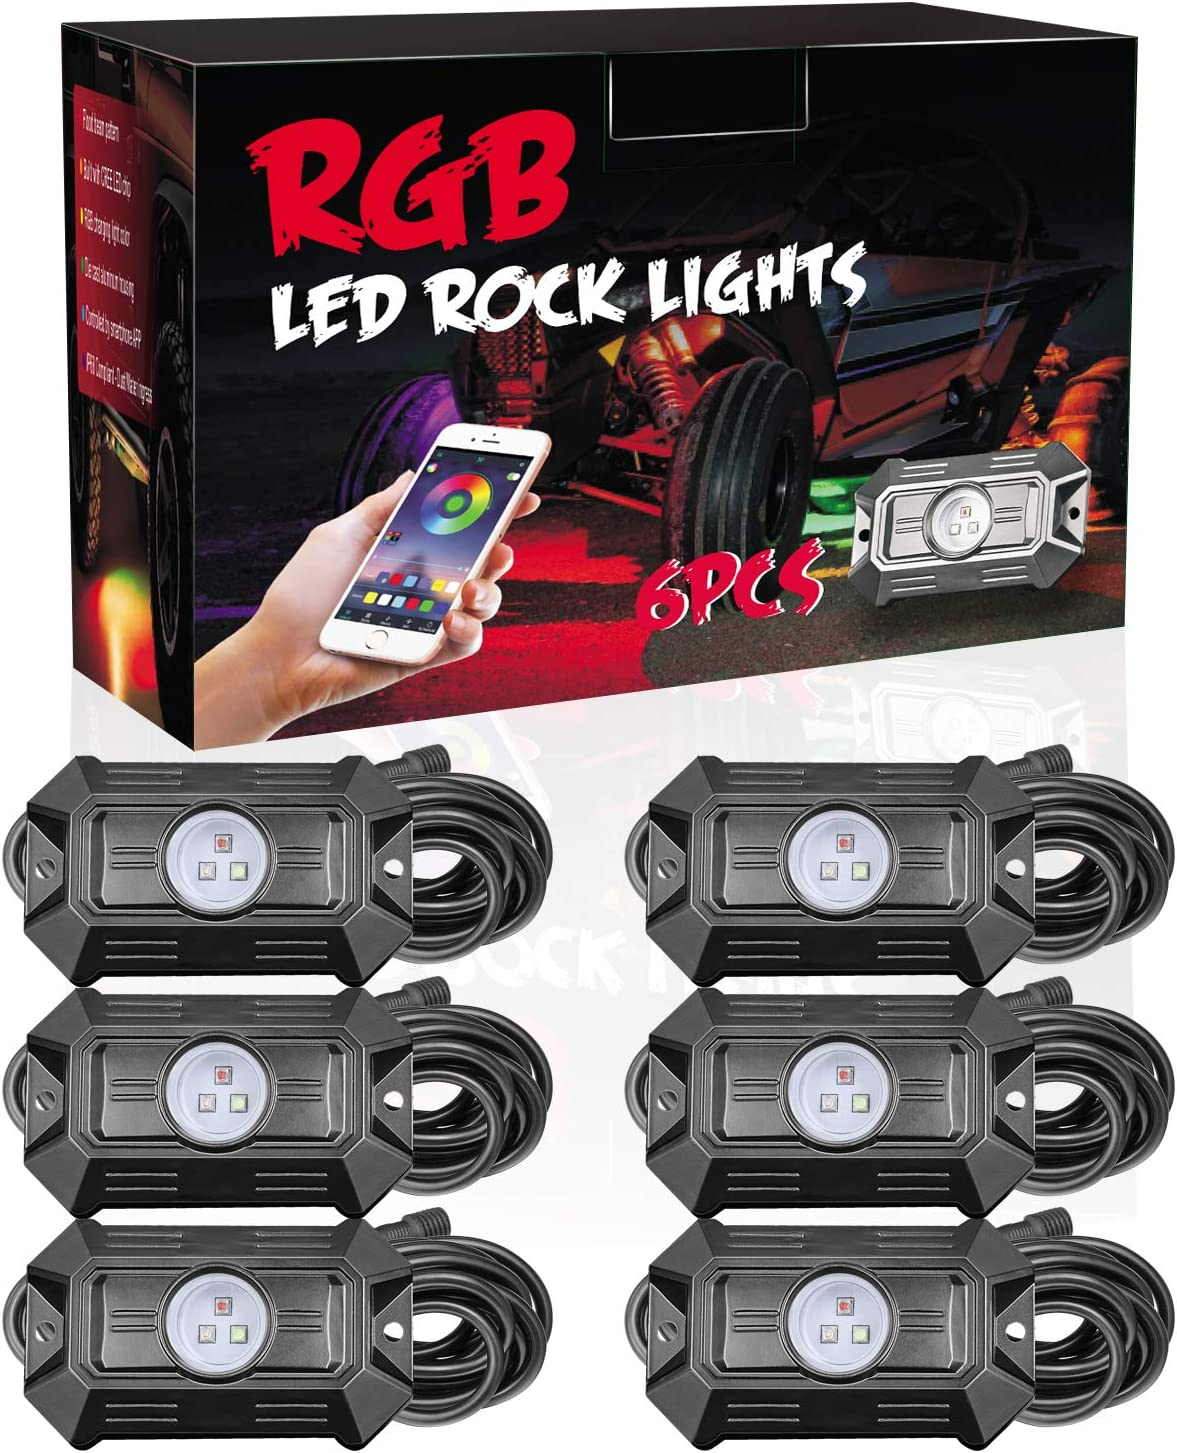 Elegant RGB Cheap mail order specialty store Rock Lights DJI 4X4 Underglow with Kits Blue Light LED